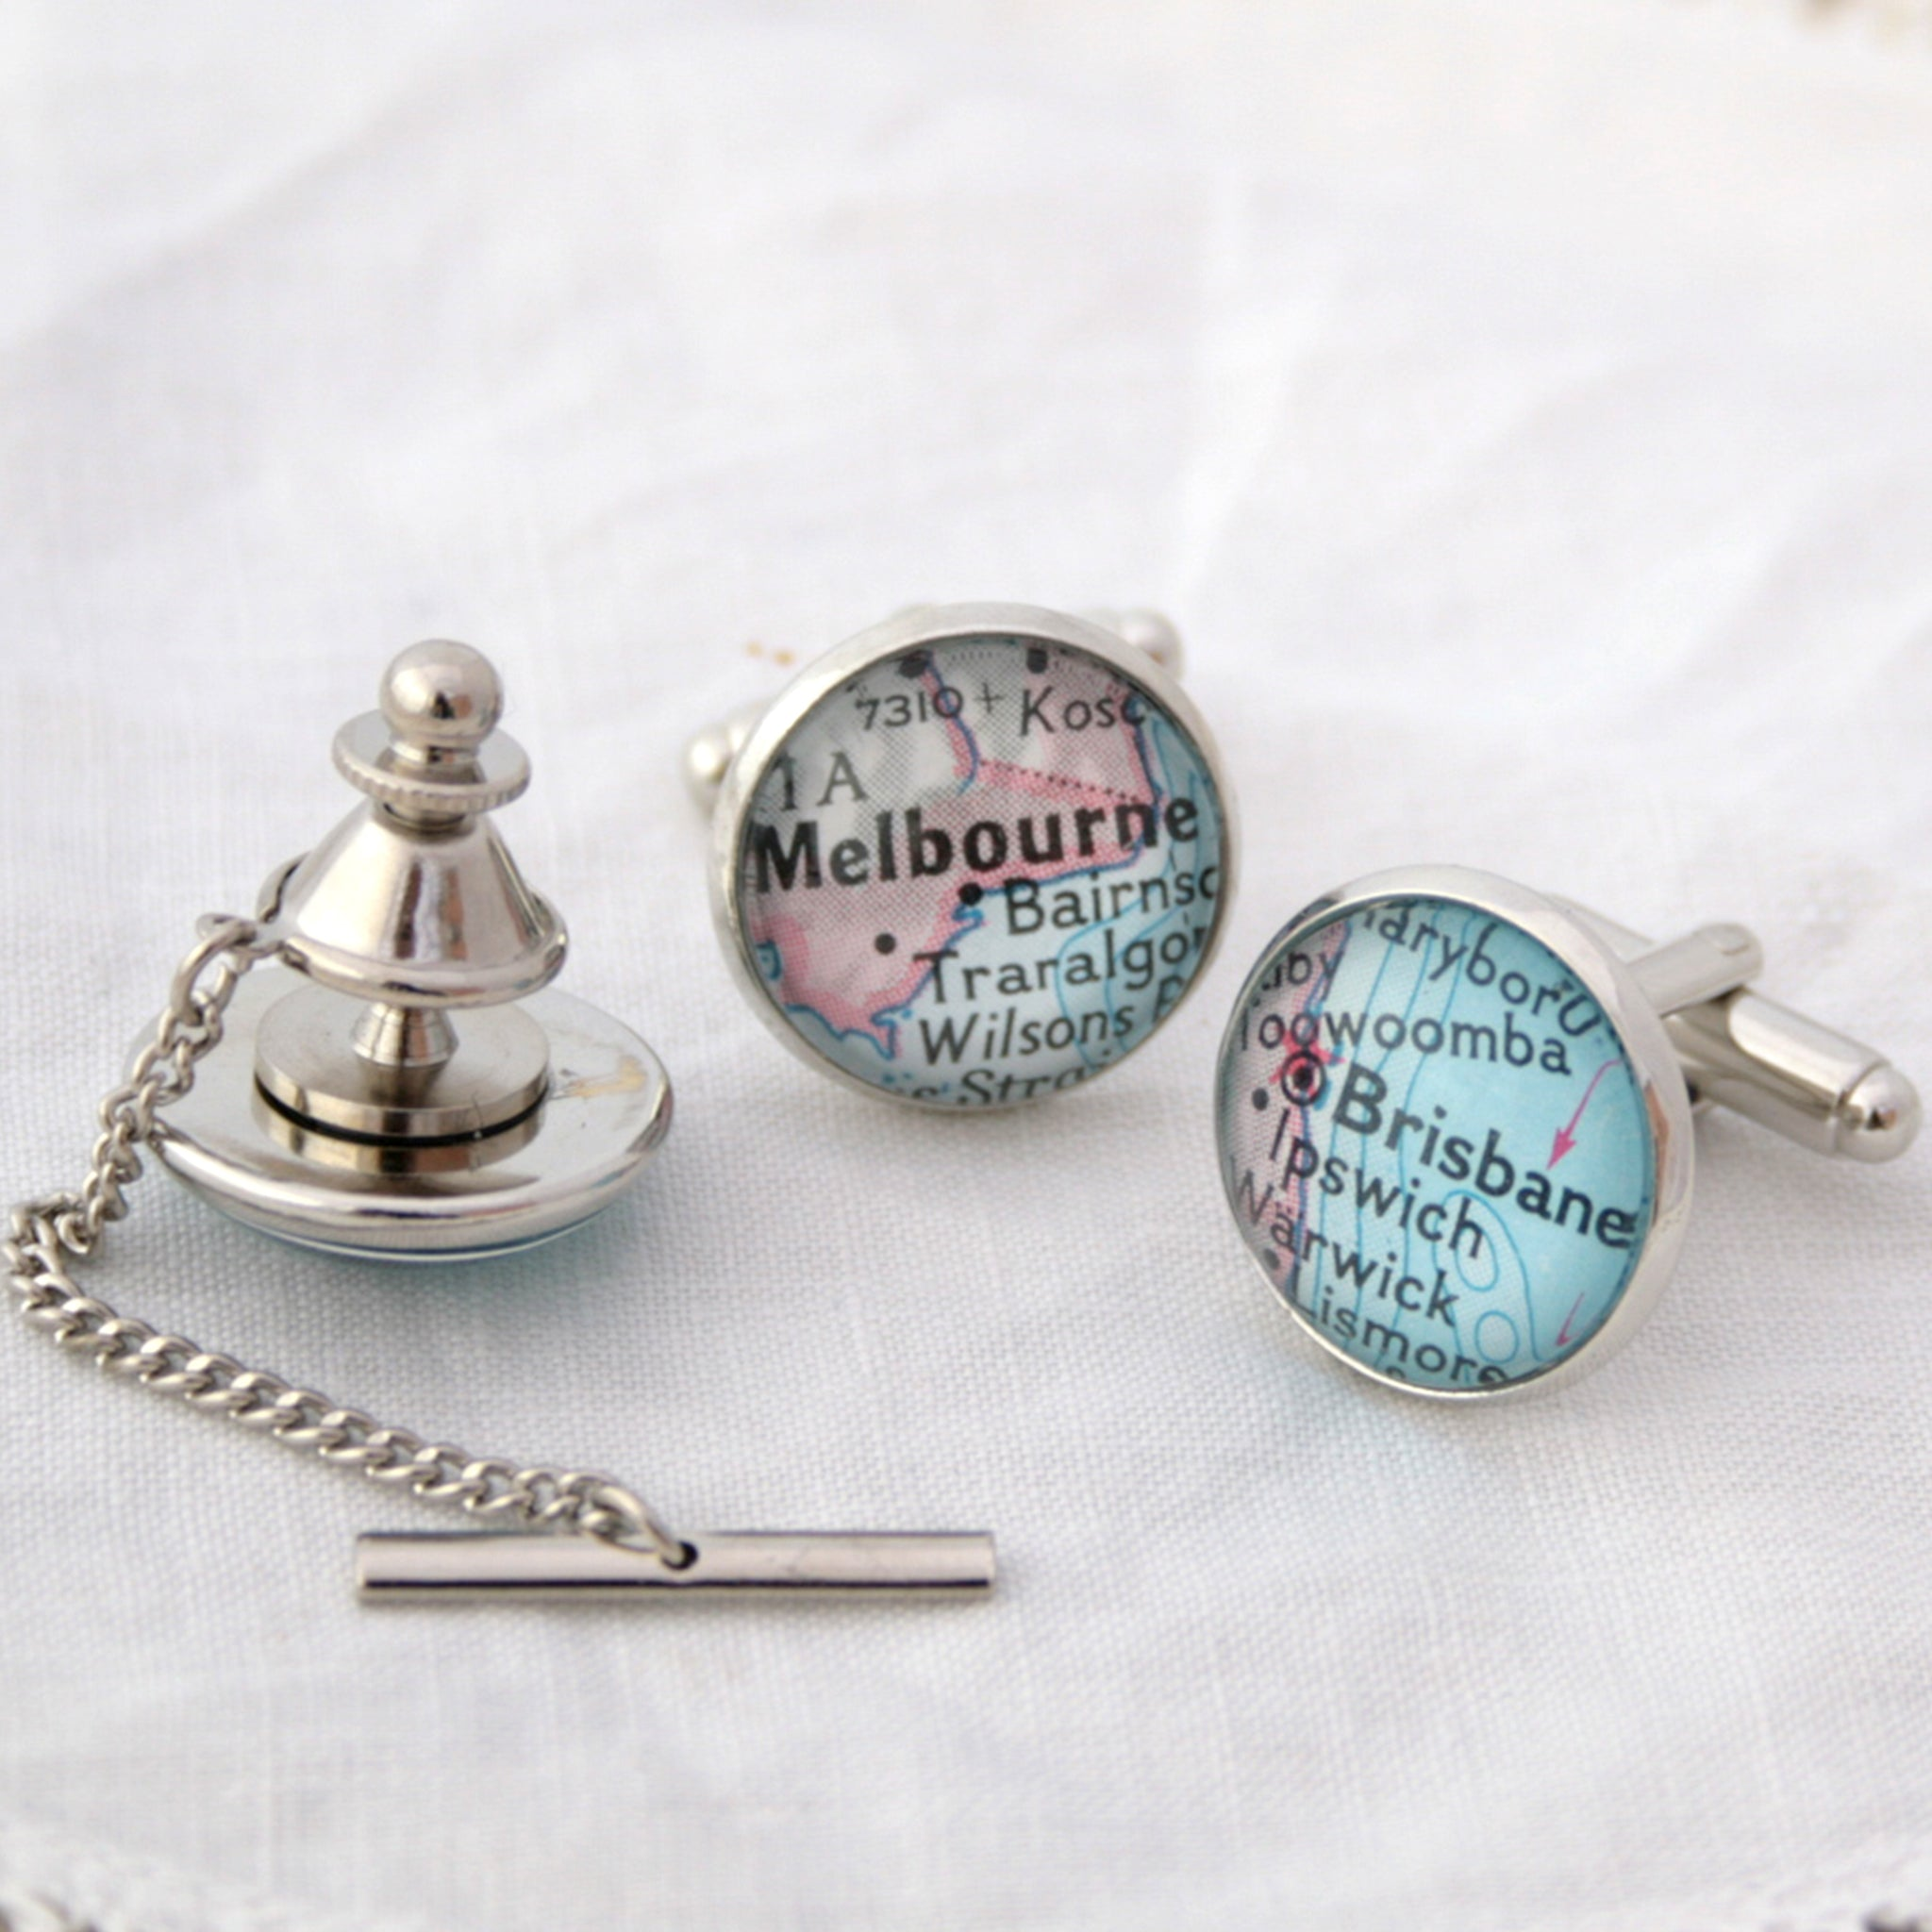 Personalised Map Cufflinks and Tie Tack in silver colour featuring Hobart, Brisbane and Melbourne